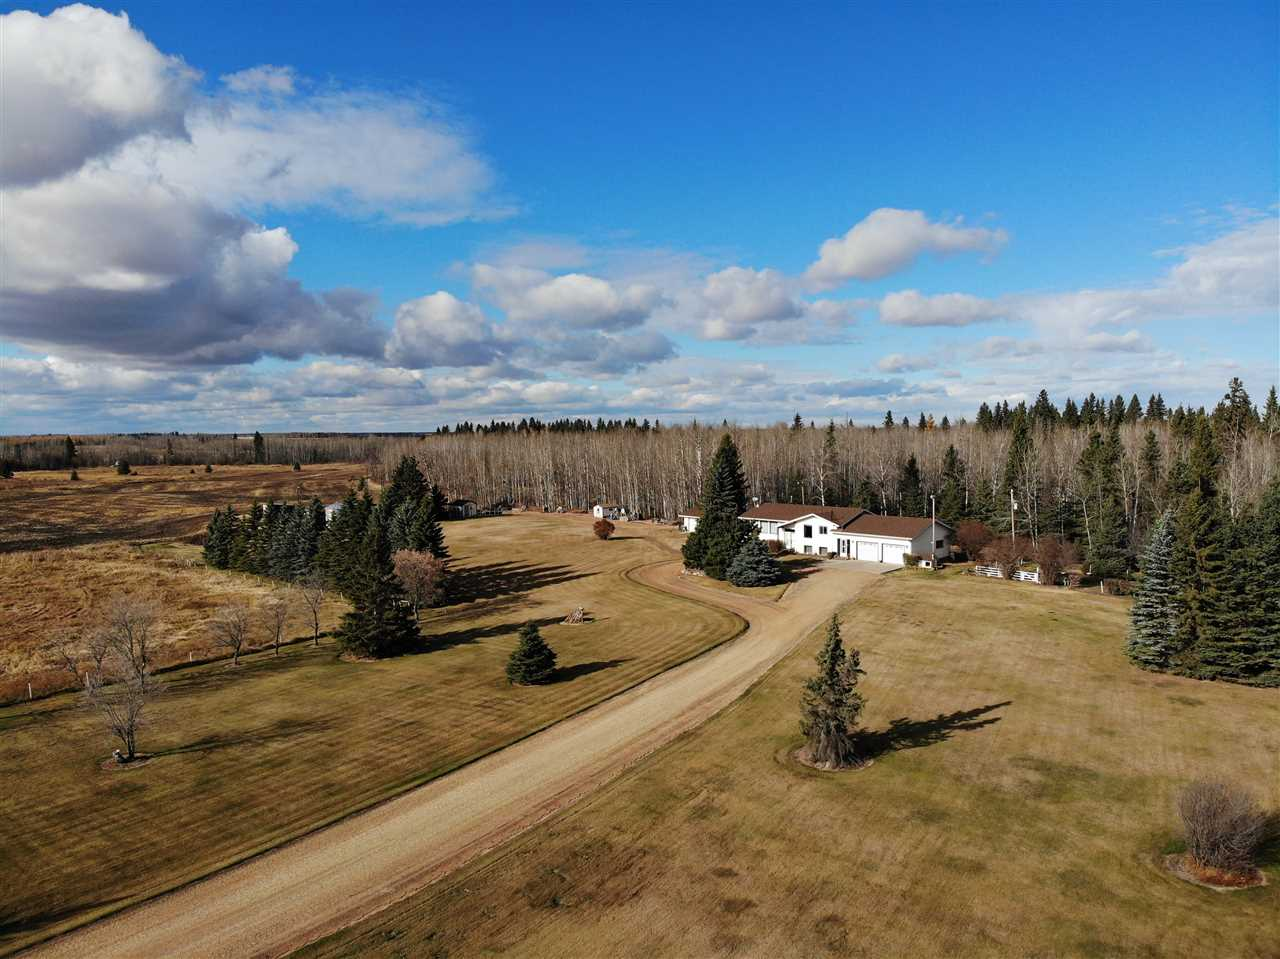 Fantastic 145 acre Farm only 6 miles West of Barrhead featuring very well built & proudly kept one owner Home and yard site. Unbelievable natural state w/ approximately 30 acres cultivatable & 110 acres mature spruce & poplar bush full of winding trails & wildlife. Clean & neat 1978 1536sq ft 3+ bedroom, 2 full bath Bi Level features ahead of it's time open concept floor plan, extensive kitchen cabinetry, spacious dining & large light filled living room. New high efficiency furnace & HW tank. Bsmnt full of recreation area, large windows & Wood stove. 24x30 high wall attached heated Garage. Bonus detached 24x26 heated Workshop Garage. Corrals & livestock shelter. 2 chicken coops. Perimeter & cross fencing. 2 drilled Water wells. 1 for home, 1 for livestock. Meticulously kept yard site full of healthy spruce & ornamental trees. Rich & fertile sheltered Garden plot. Back meadows & camping area. Much much more to see & feel for yourself.